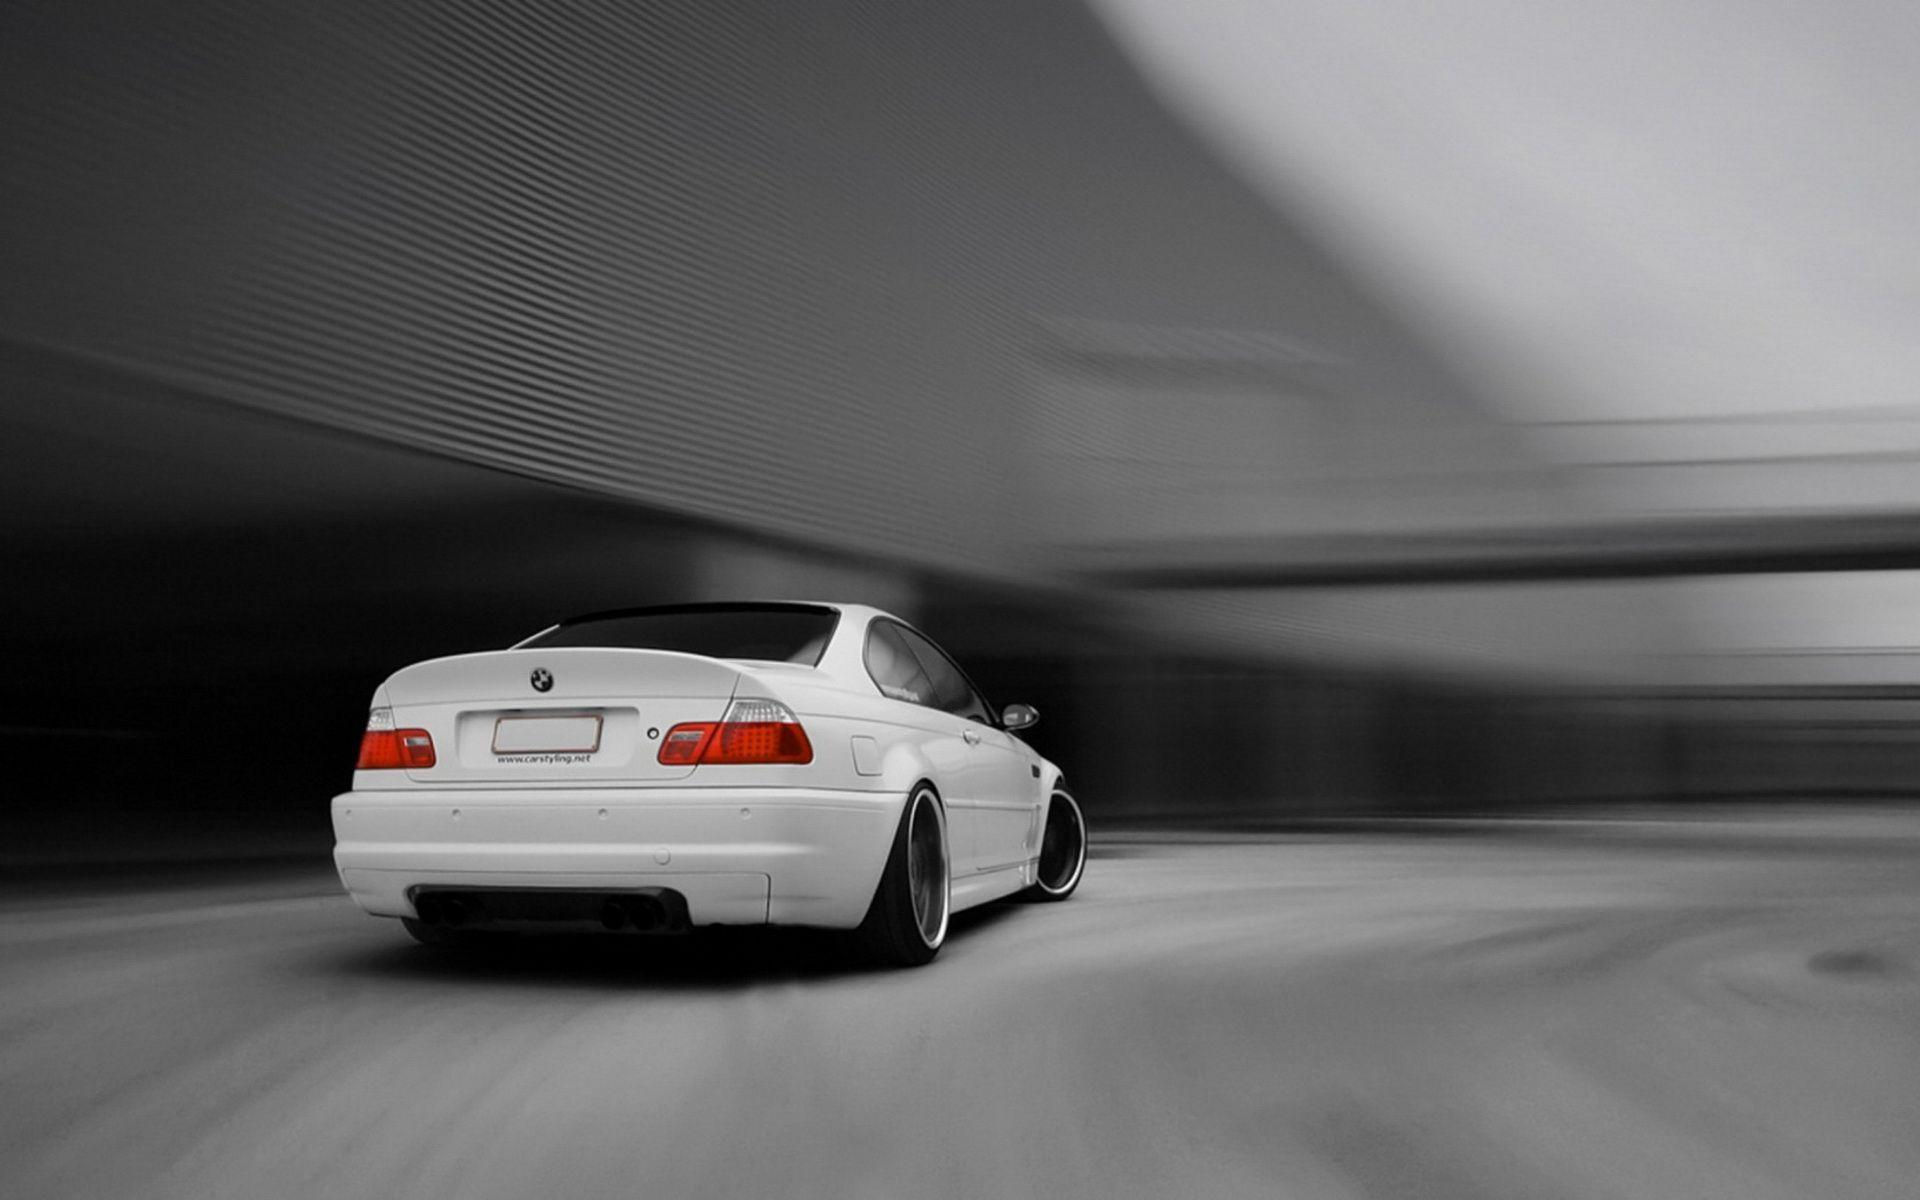 Bmw E46 M3 Wallpapers Wallpaper Cave